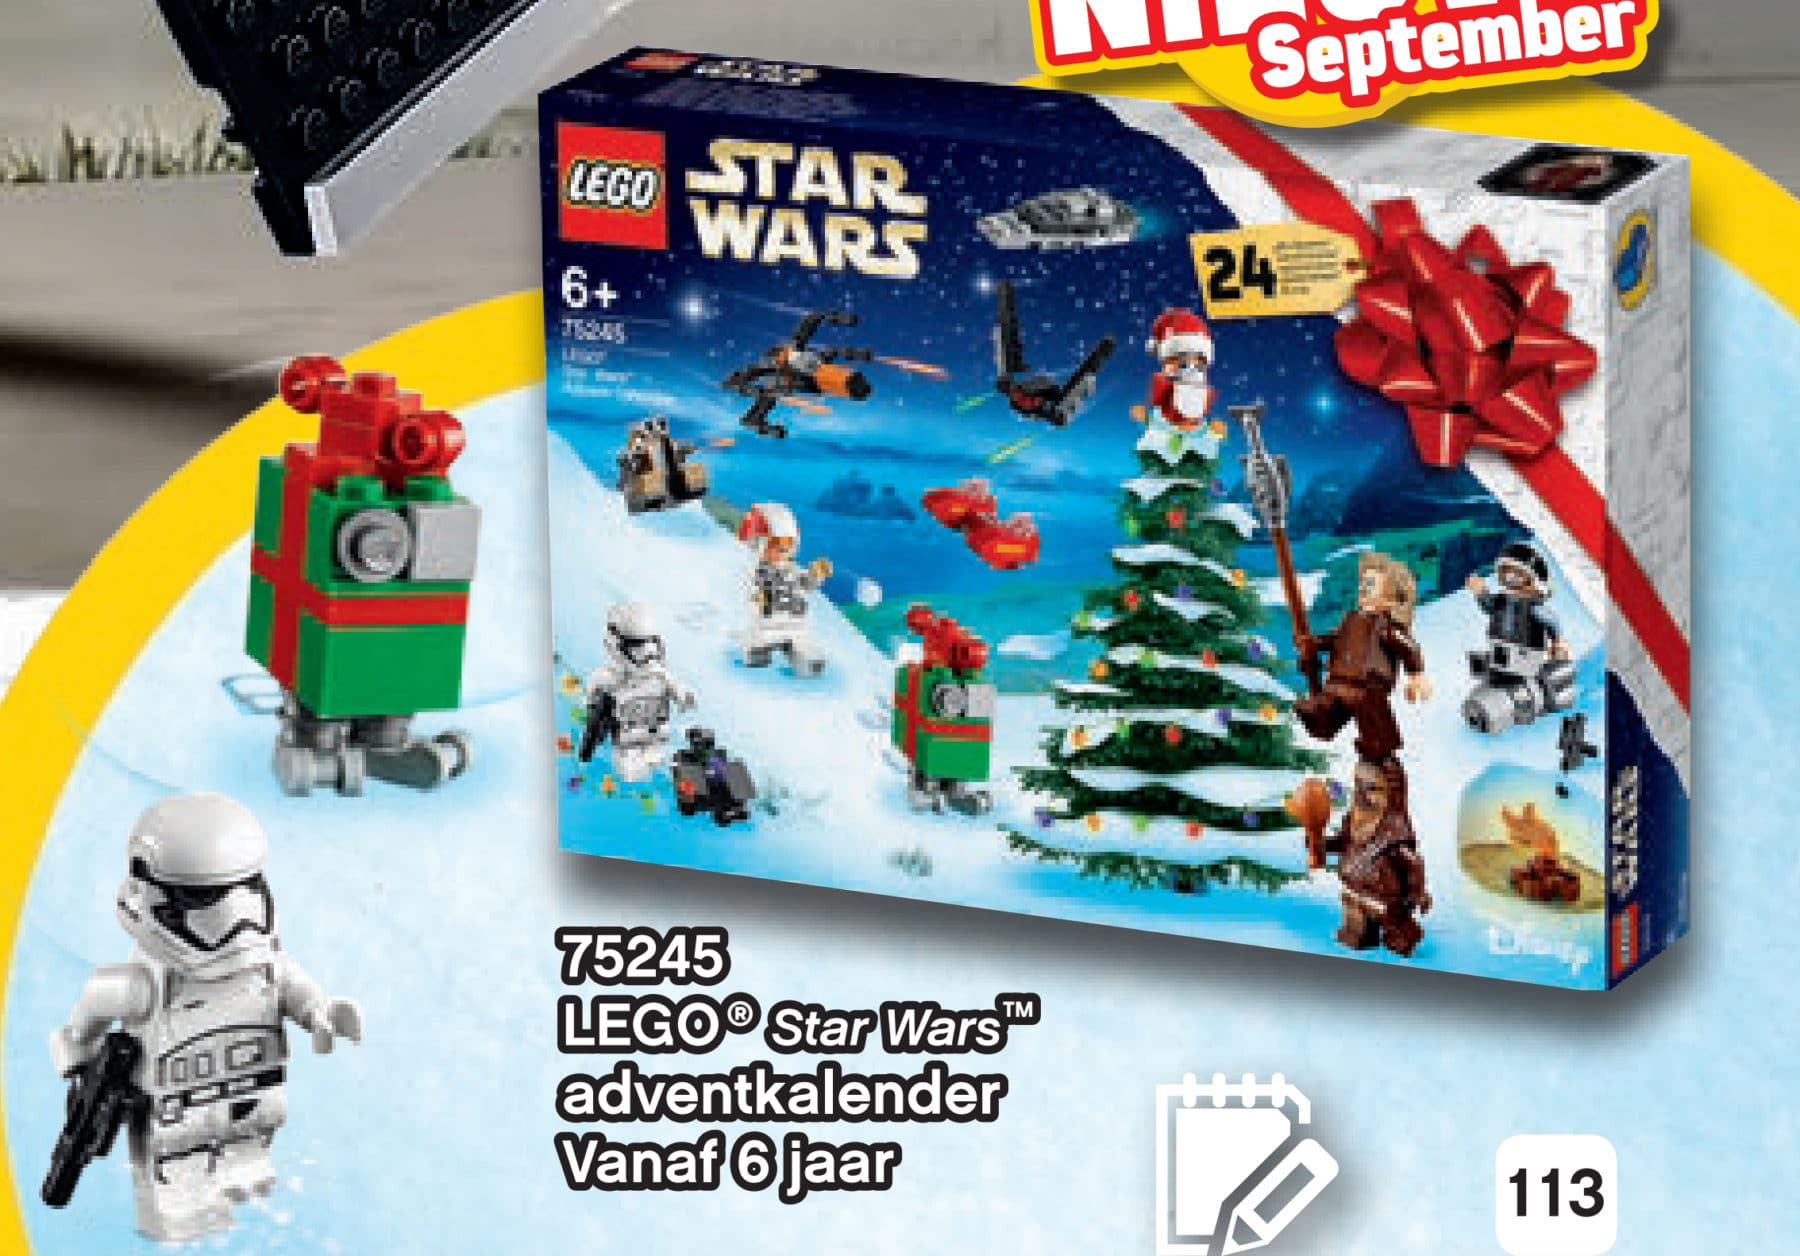 LEGO Star Wars 75245 Adventskalender 2019